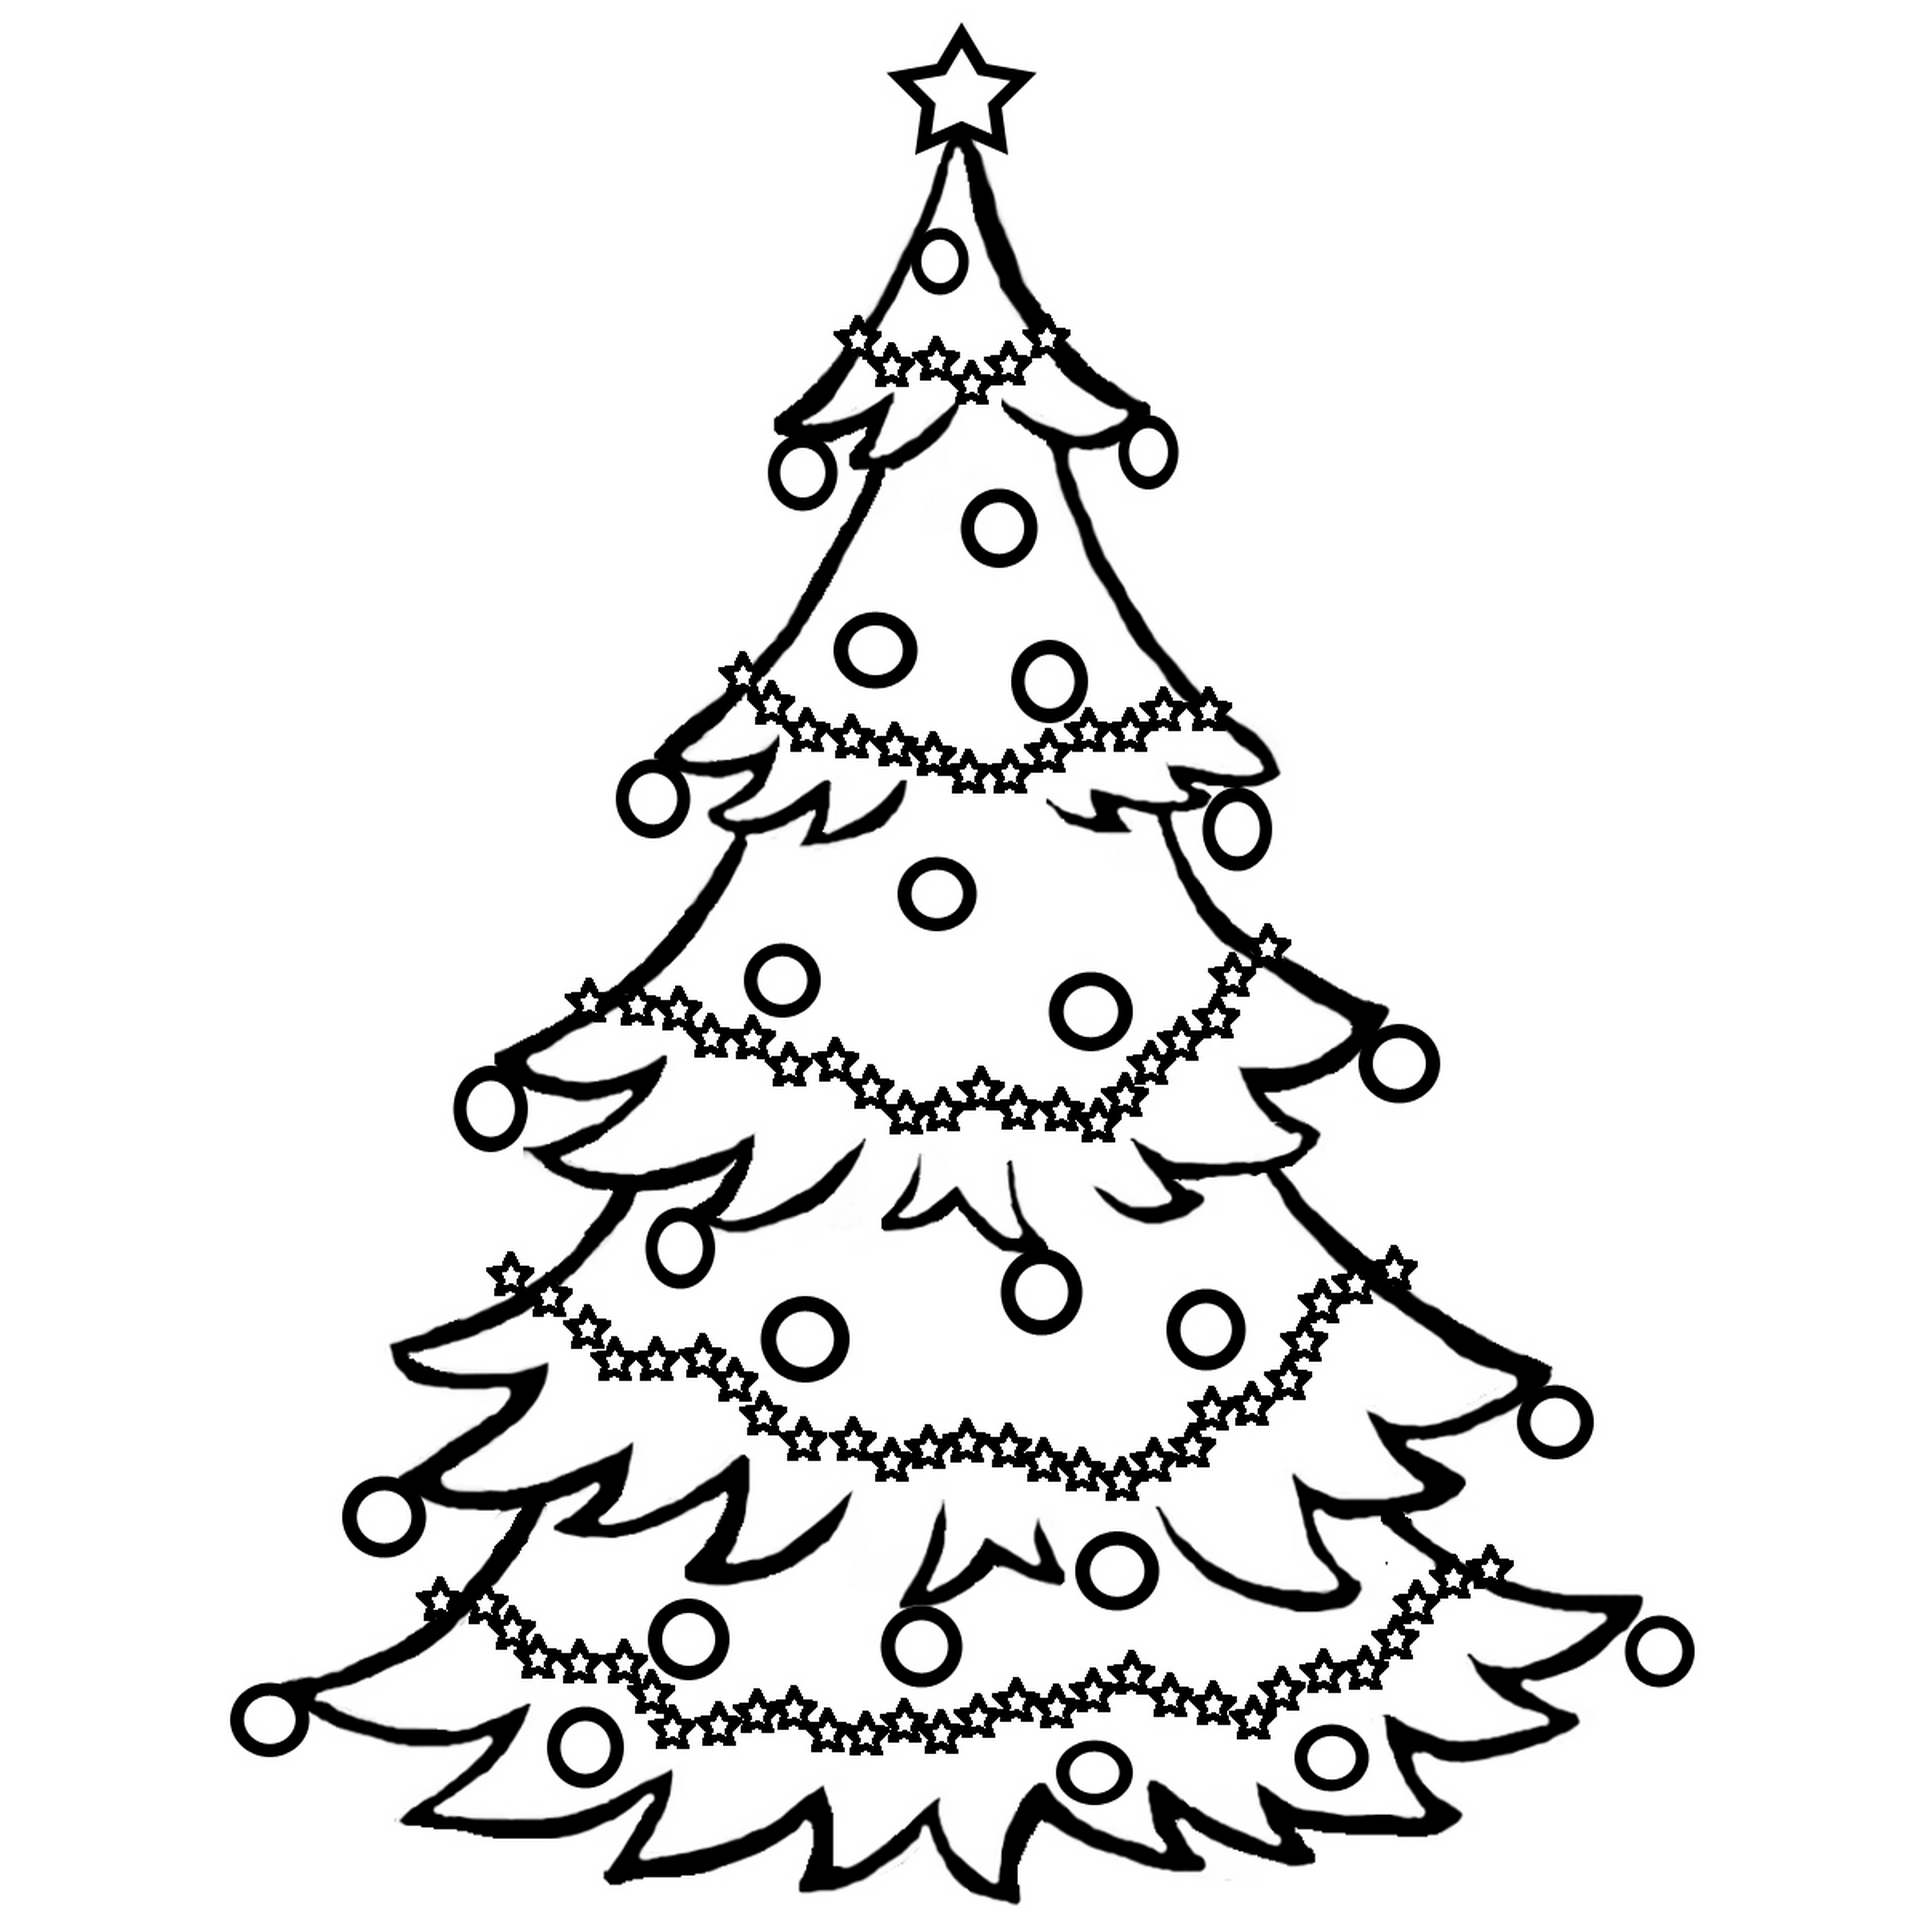 christmas coloring pages to print free christmas tree coloring pages for childrens printable for free coloring christmas print to pages free